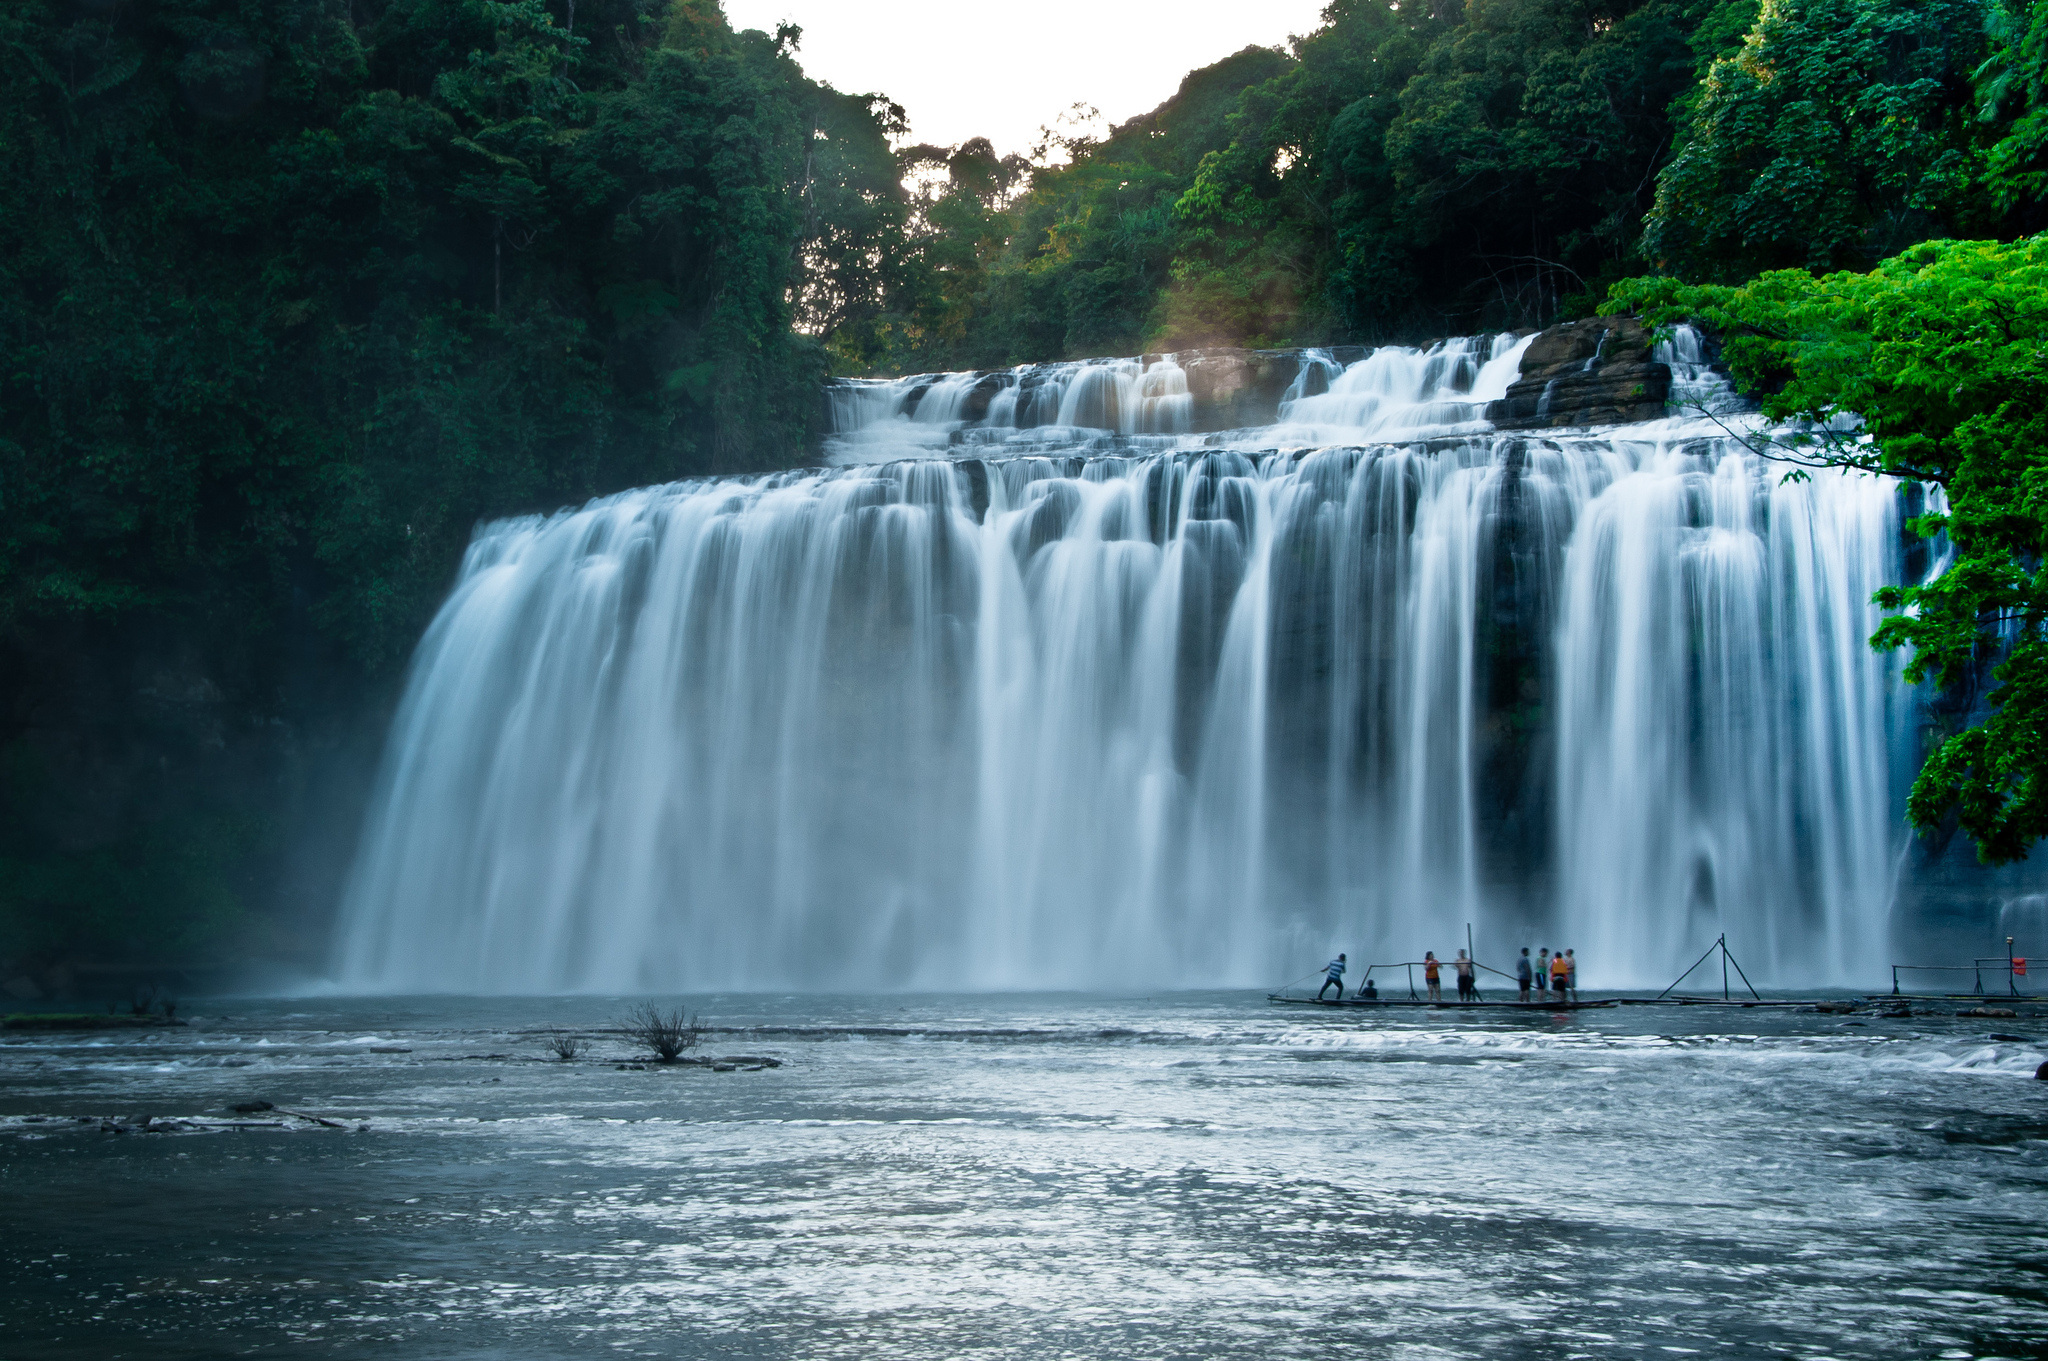 Tinuy-an Falls - Waterfalls in the Philippines